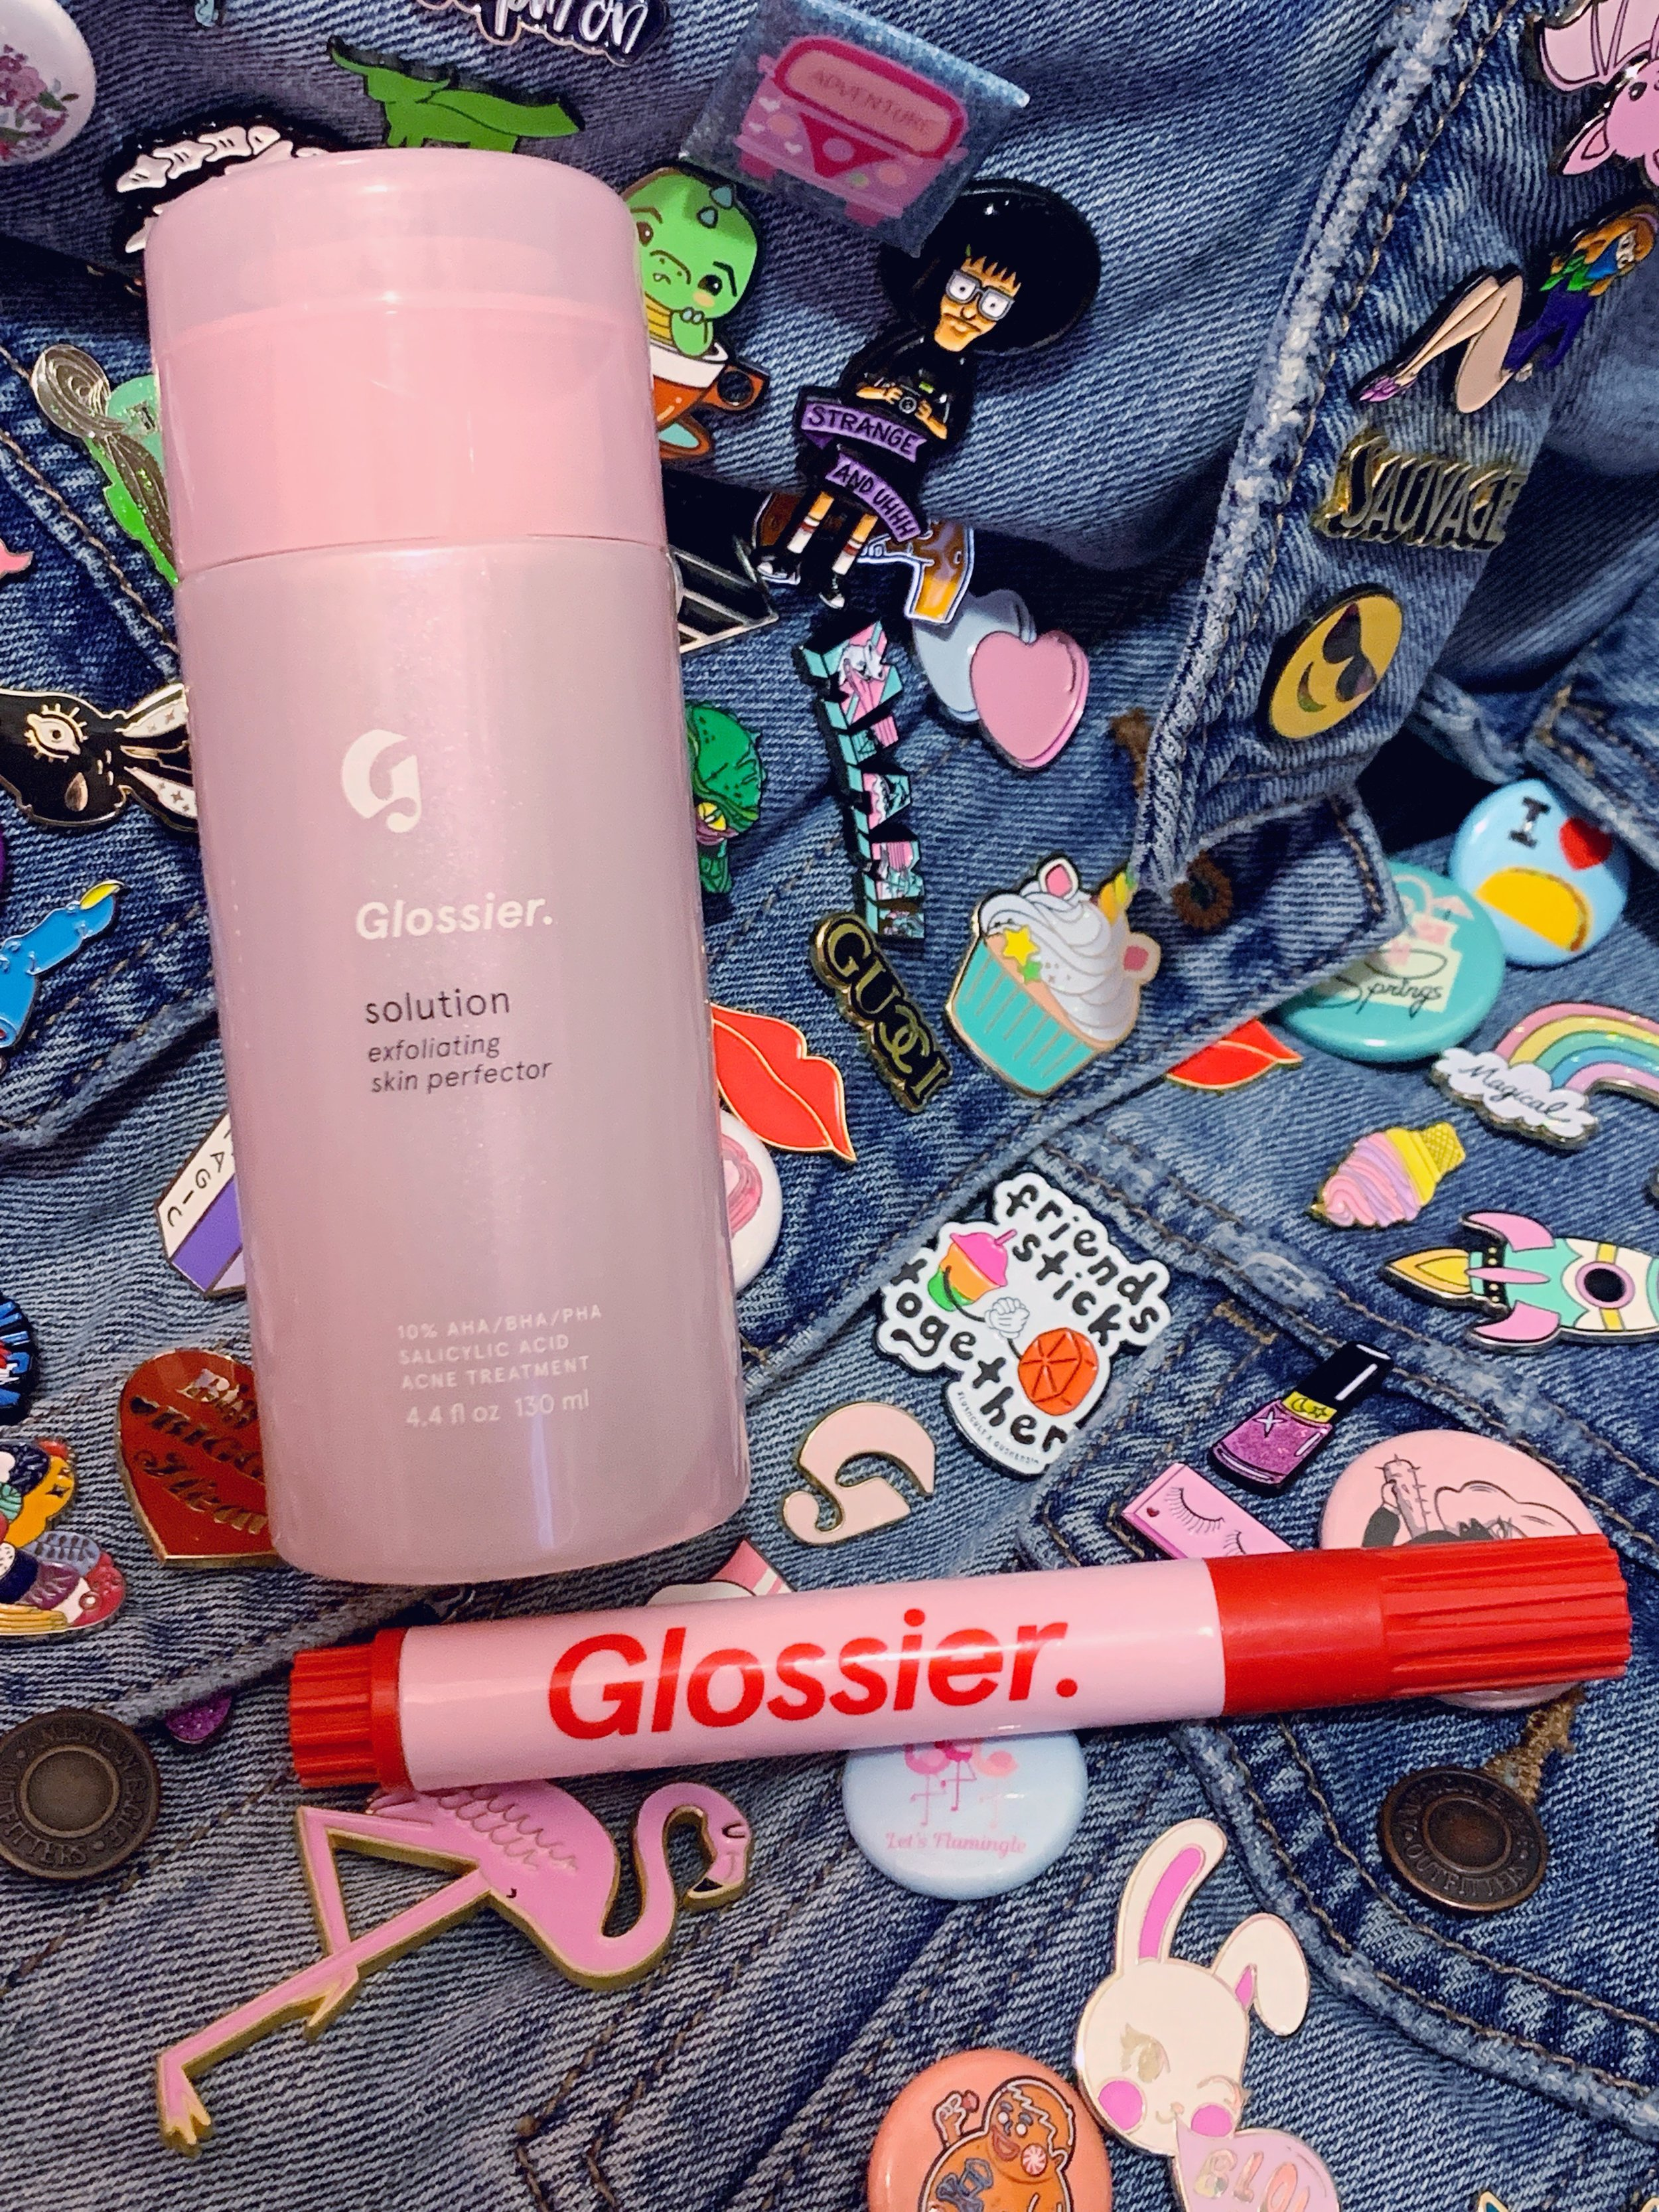 """Solution plays well with others! I also pair it with the zit stick or the """"breakout eraser"""" as Glossier playfully named this handy, purse-friendly must-have. (Cool points if you can spot the Glossier """"G"""" iconic logo. That is also available in the shop.)"""